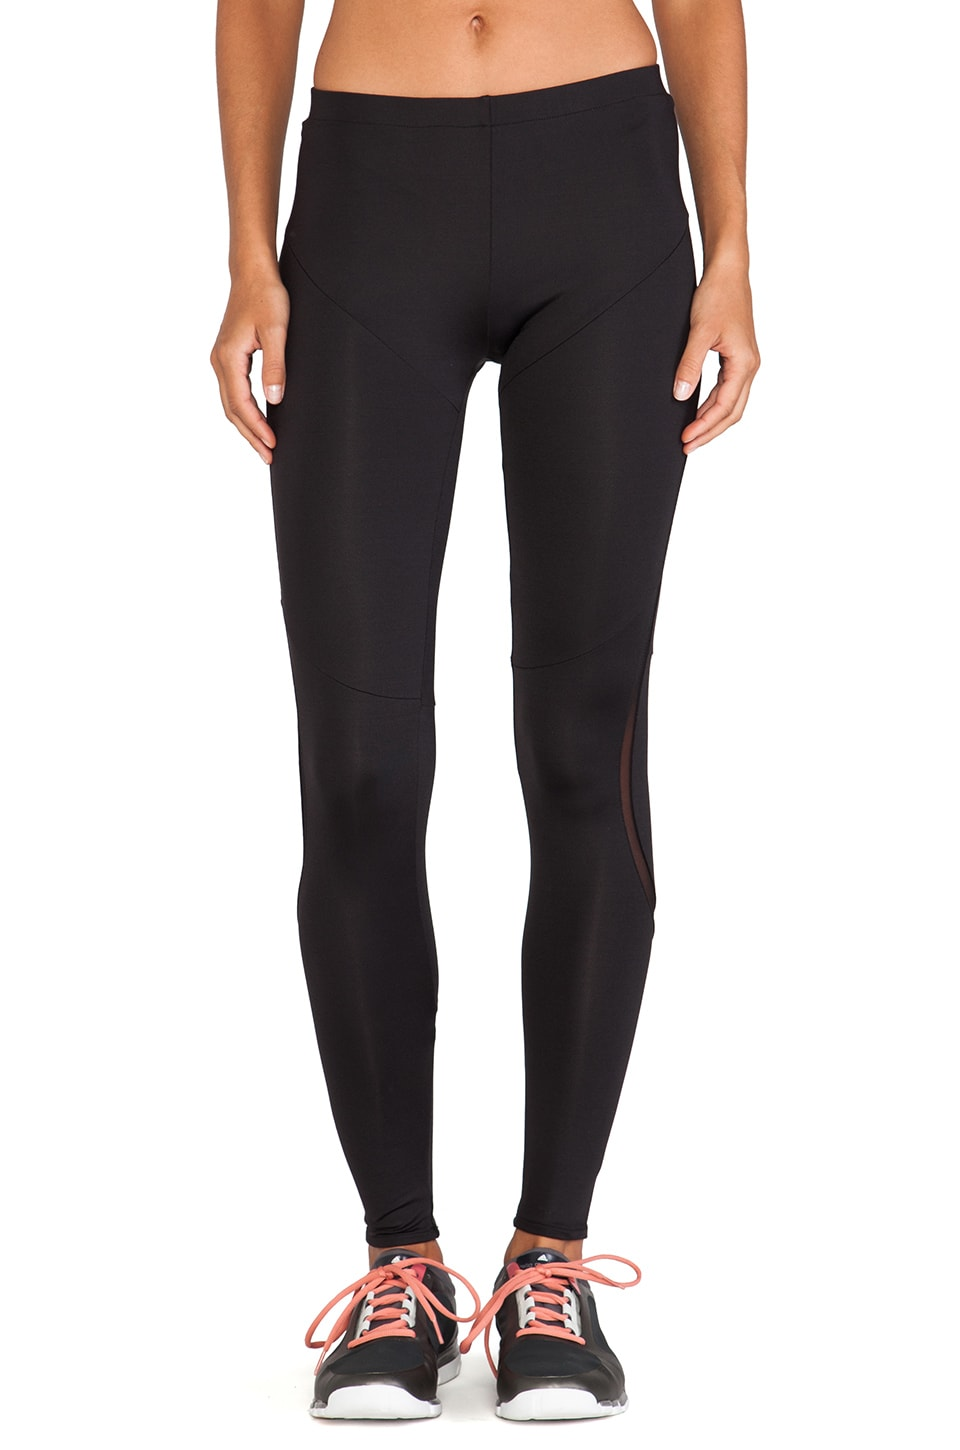 Norma Kamali Diagonal Mesh Insert Legging in Black